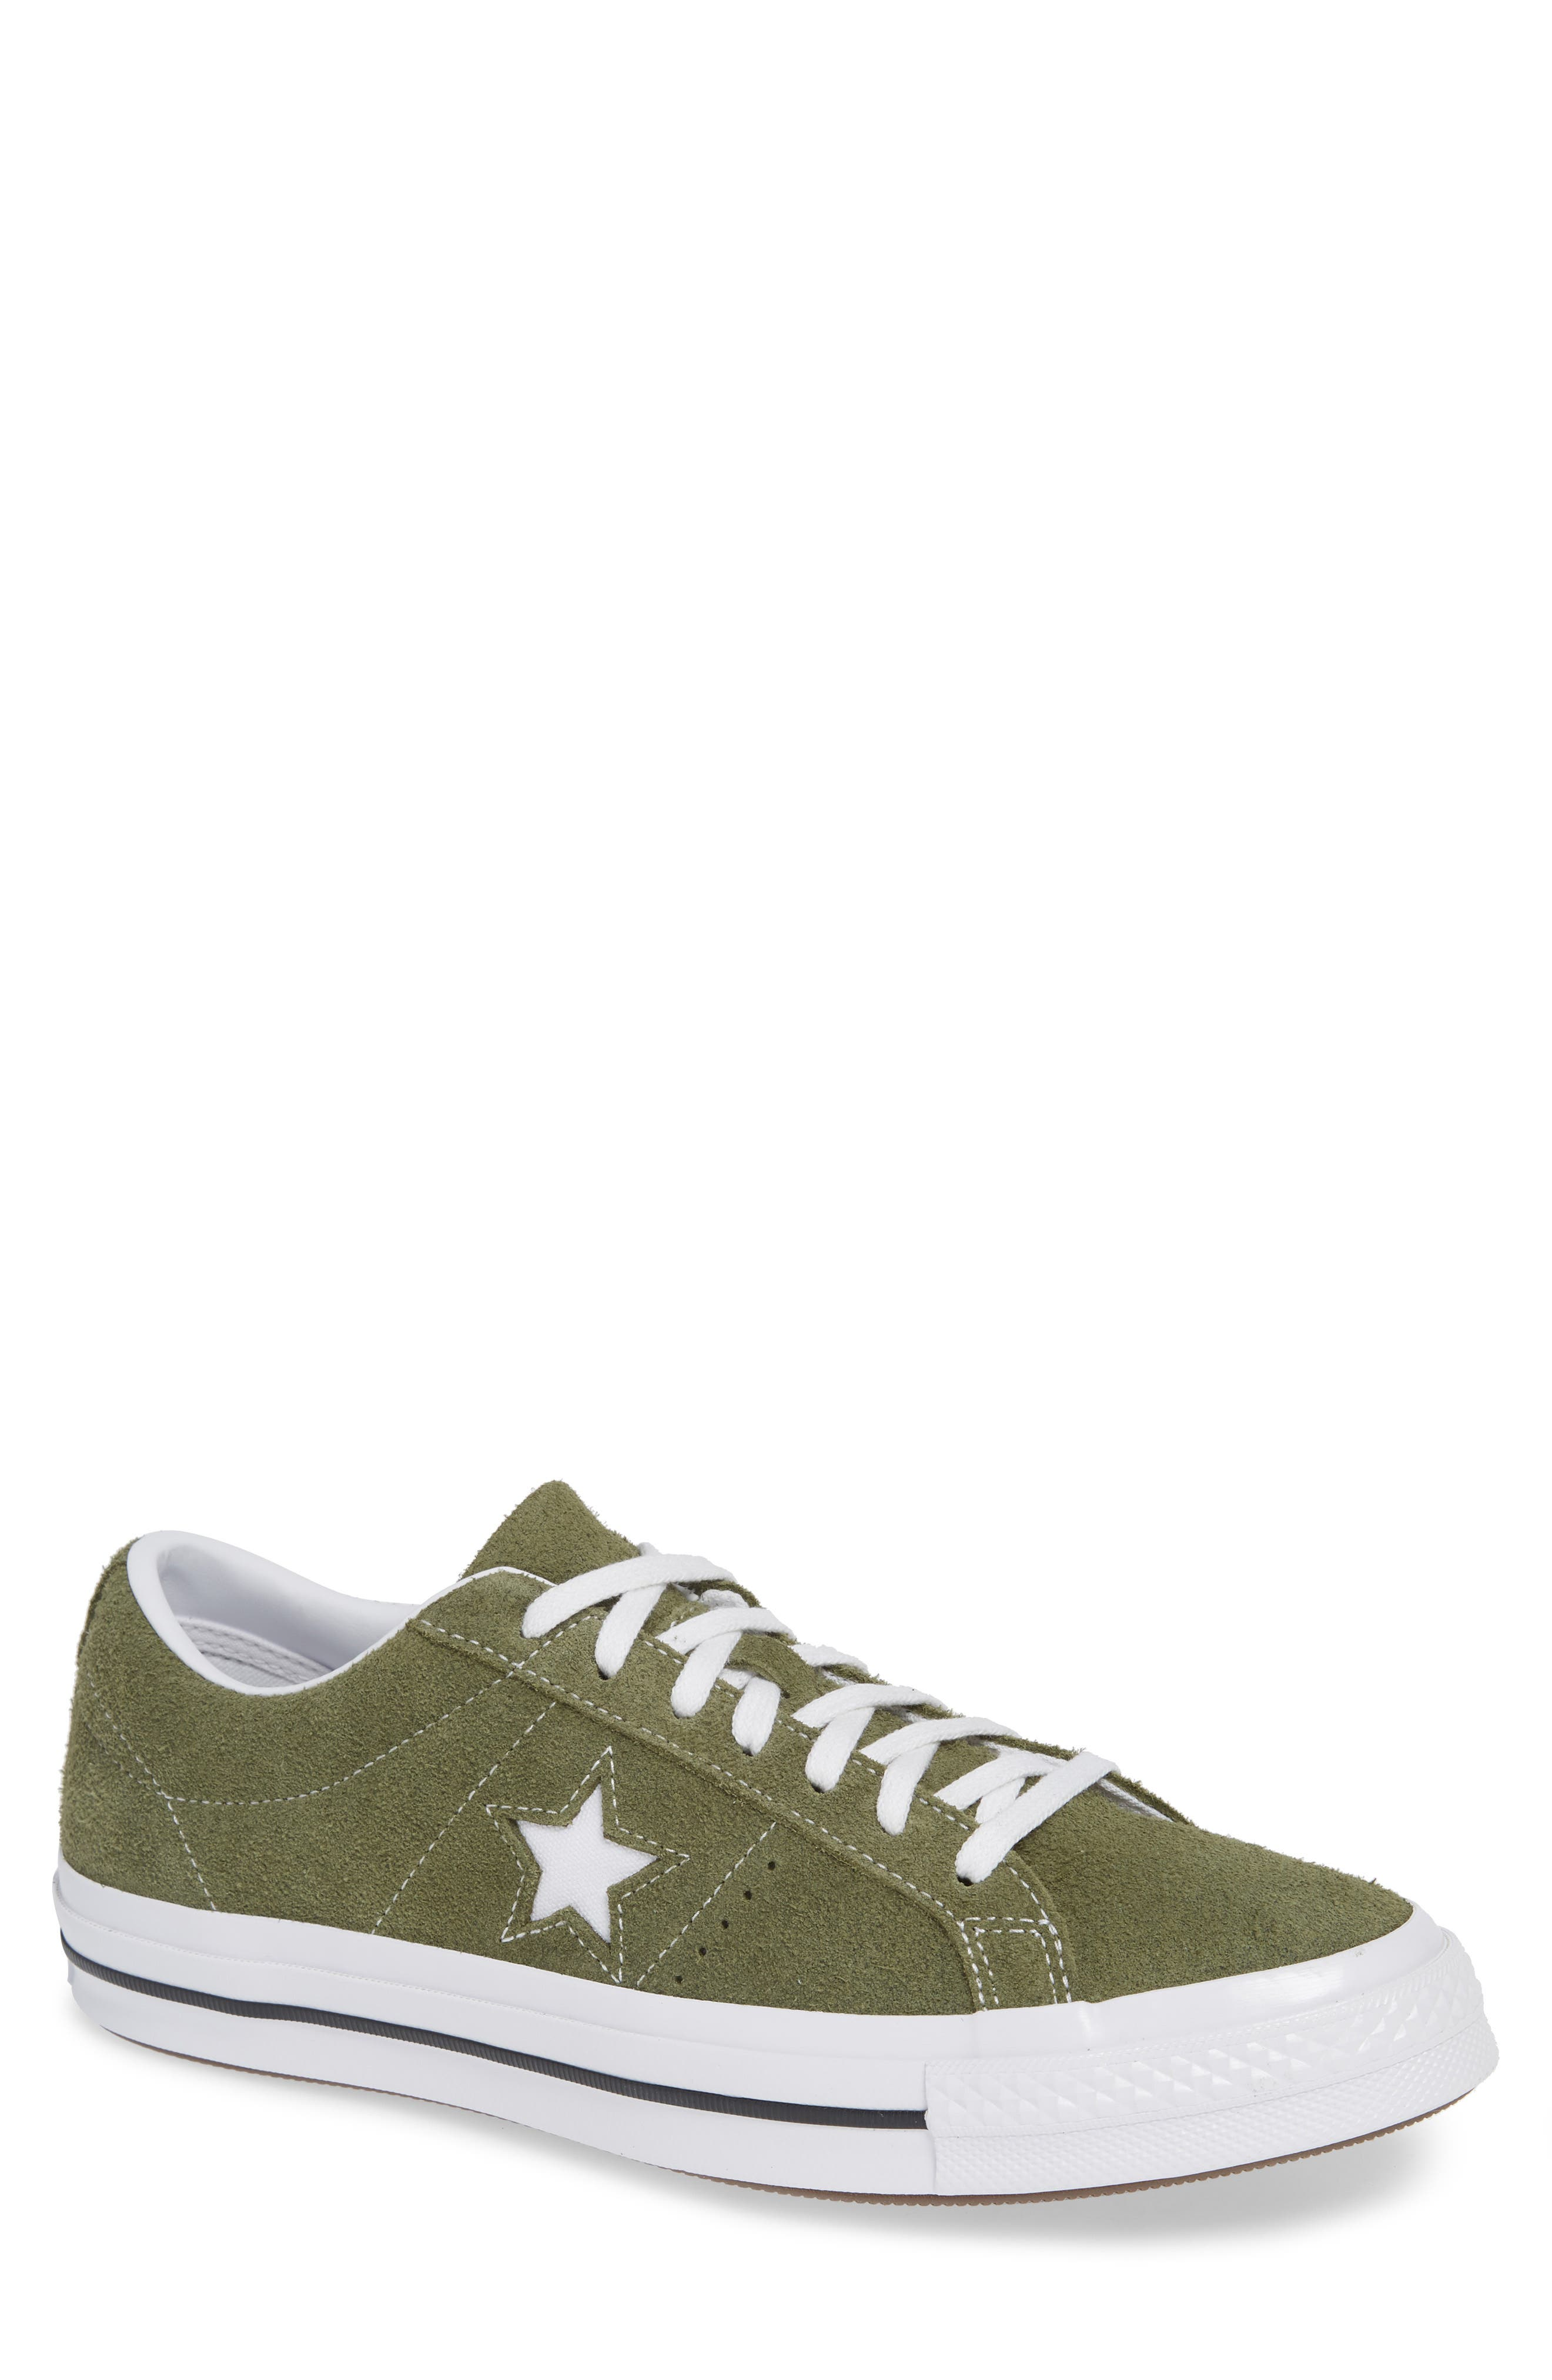 5572f4fe17d7 Converse - Men s Casual Fashion Shoes and Sneakers